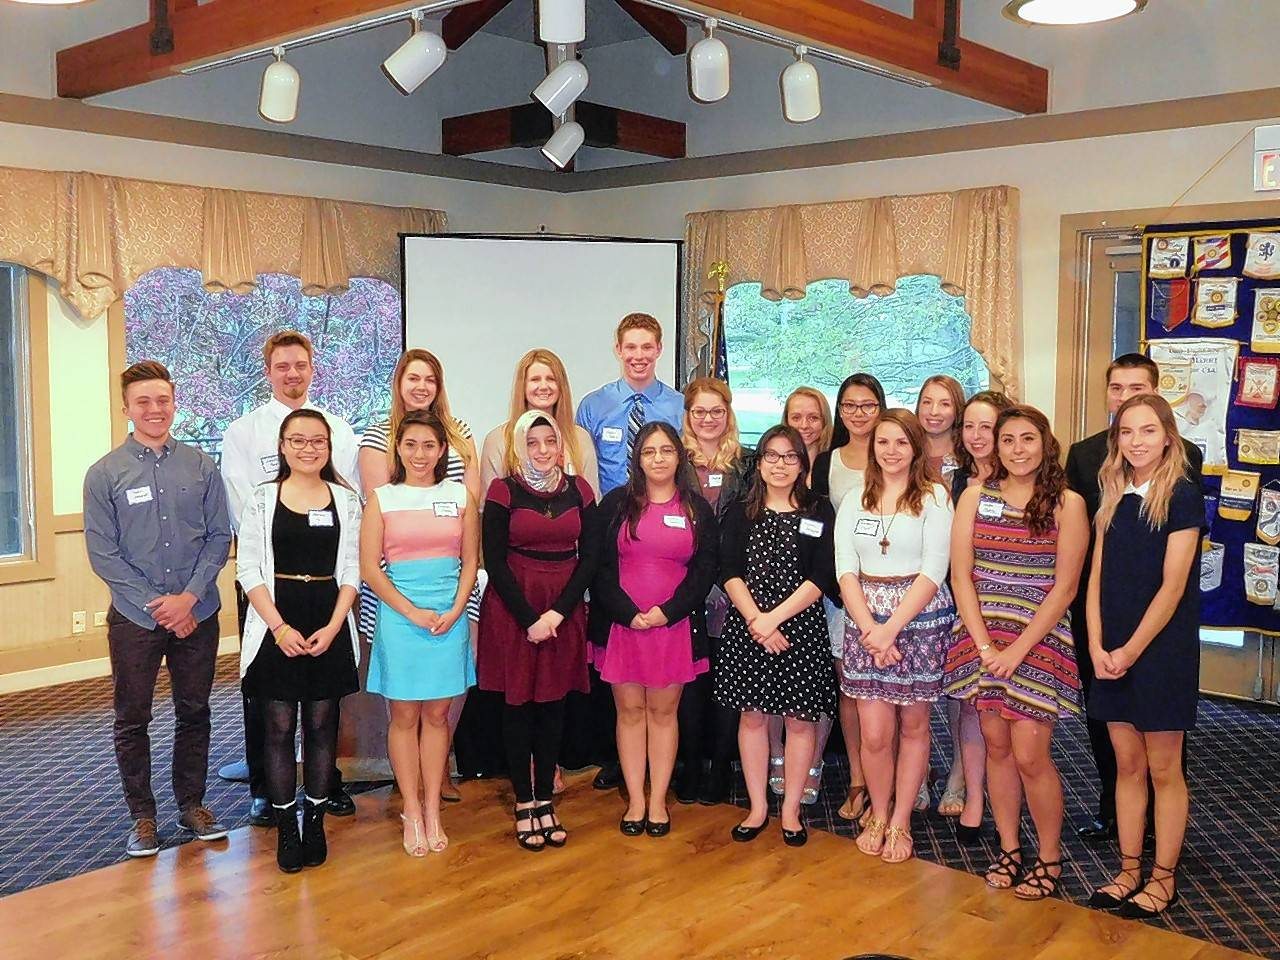 The Dundee Township Rotary Club awarded scholarships to local high school students during its annual banquet. Award recipients include, back row from left: Taylor Schmidt, Timothy Randl, Angela Tripp, Alexandra Lorenz, Dylan Subrin, Sydney Faler, Jacqueline O'Connor, Jocelyn Collado Kuri, Alyssa Cassiere, Amy Al-Salaita, and Michael Holmes. And front row from left: Ashley Le, Monica Juarez, Deniz Namik, Jazmin Pacheco, Krystine Strzepek, Kimberly Grant, Jaida Olvera, Olivia Zahara.